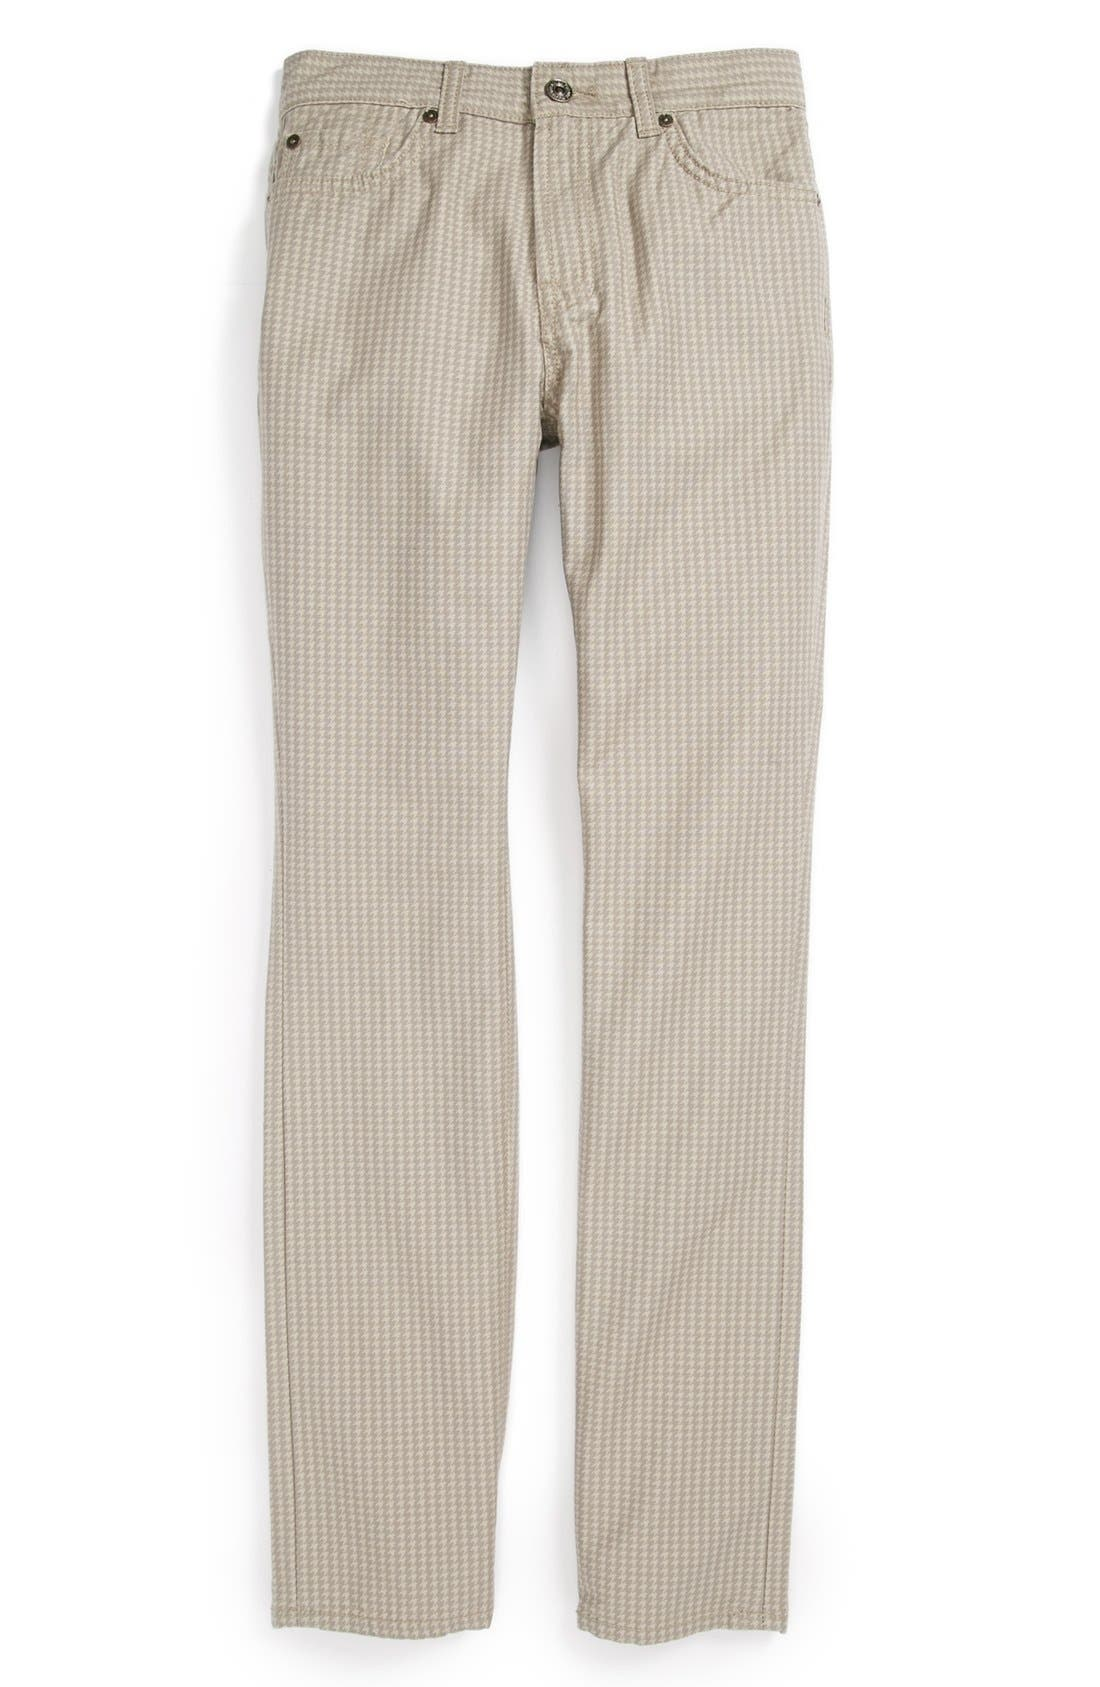 Alternate Image 2  - 7 For All Mankind® 'The Straight' Straight Leg Pants (Big Boys) (Online Only)